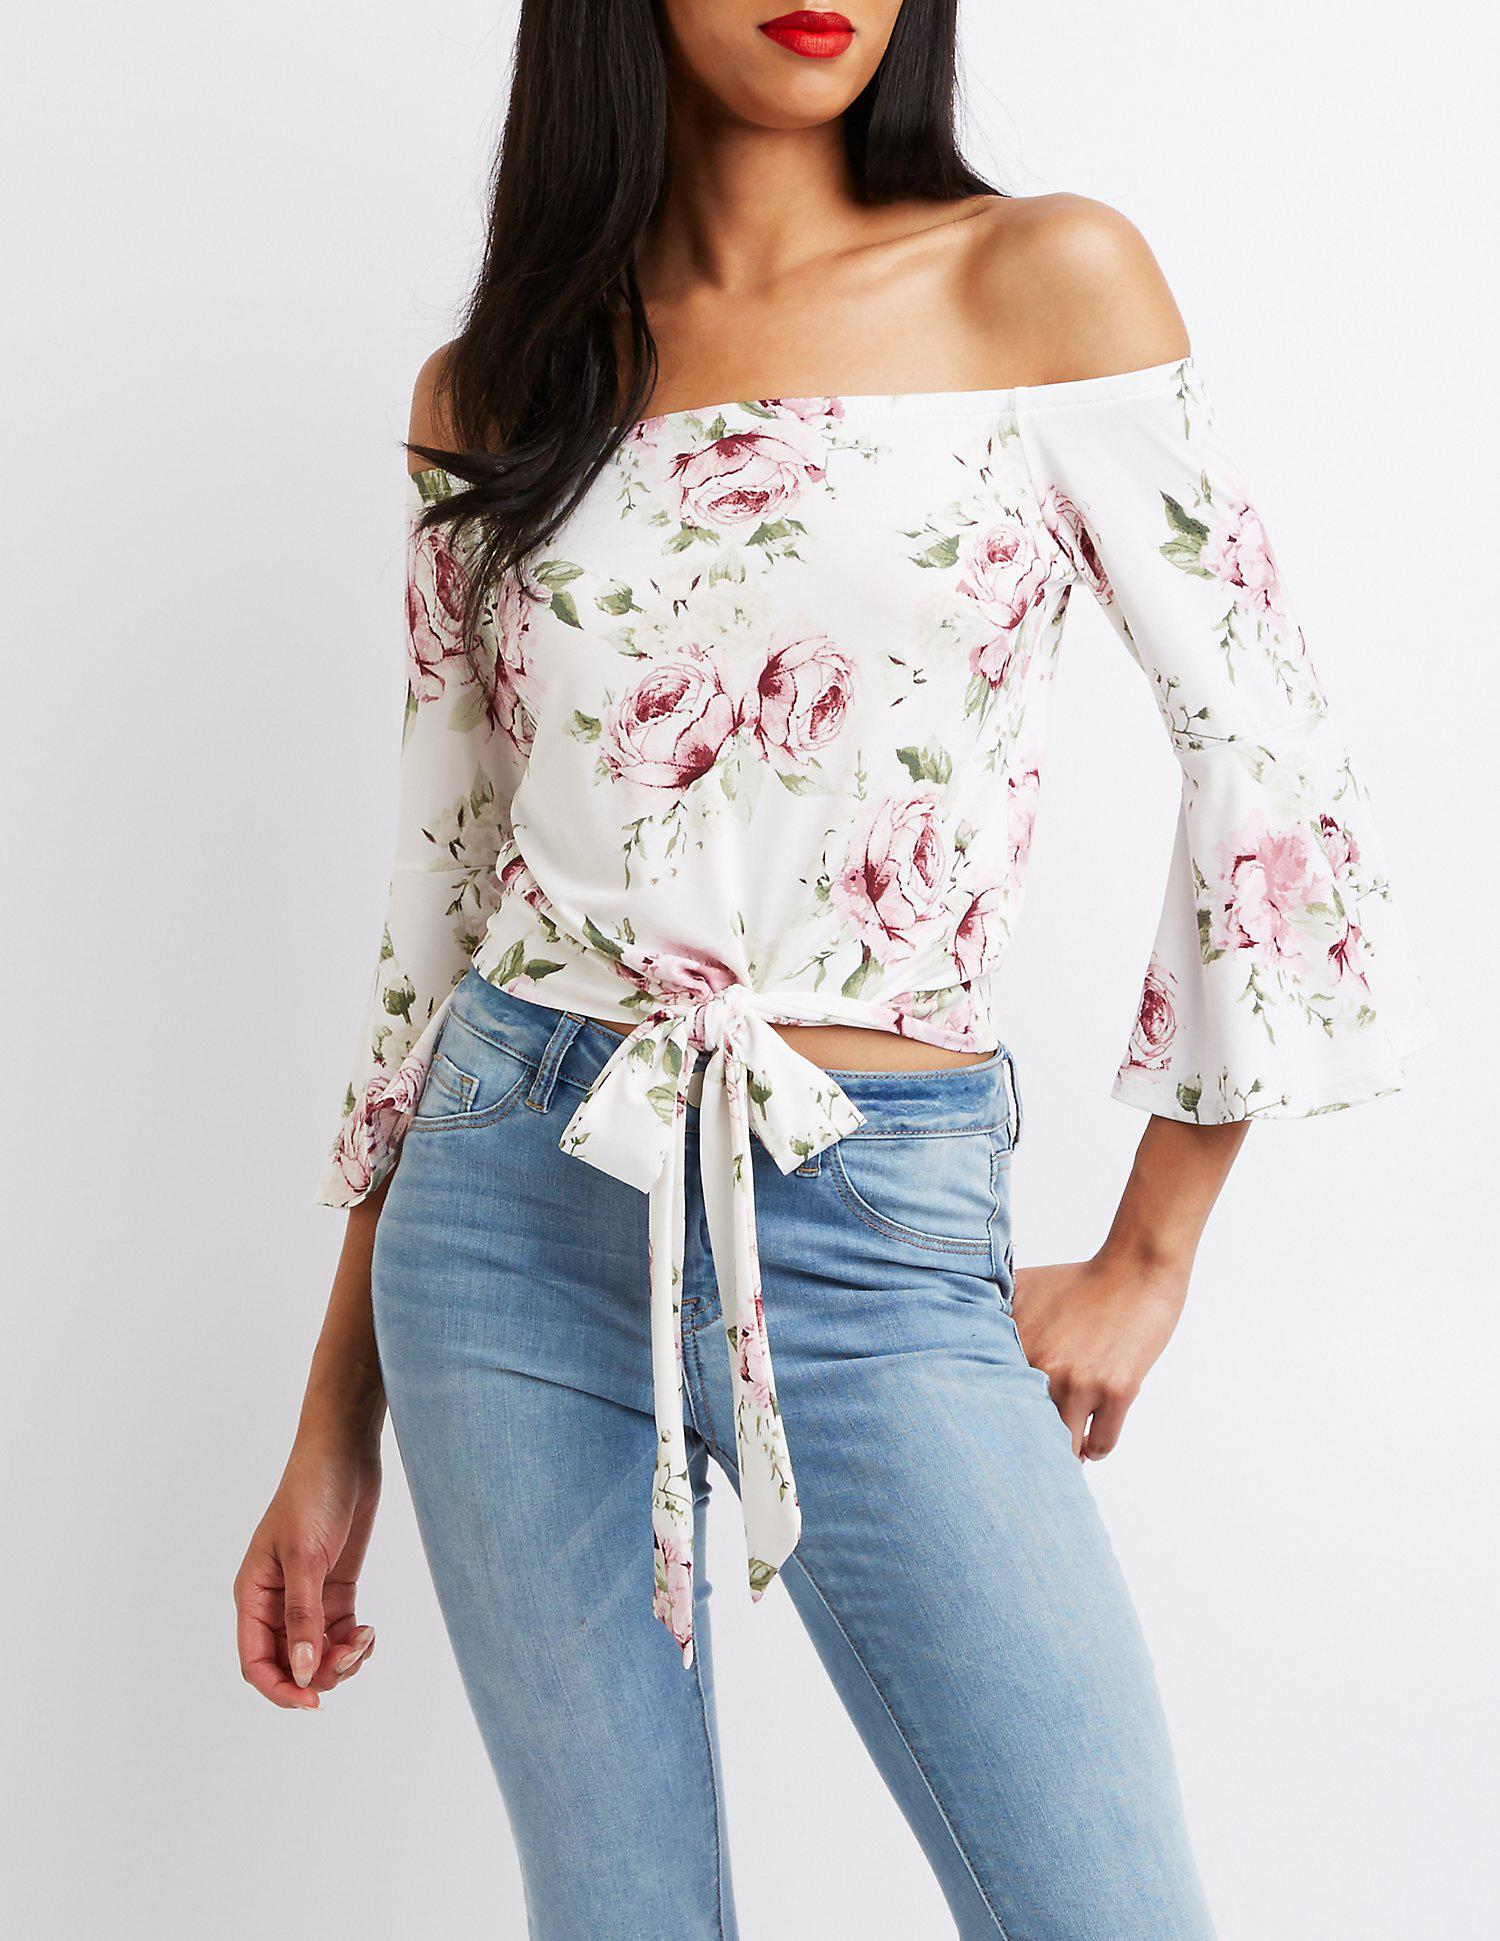 24b2cb6b60d Gallery. Previously sold at: Charlotte Russe · Women's White Tube Tops ...